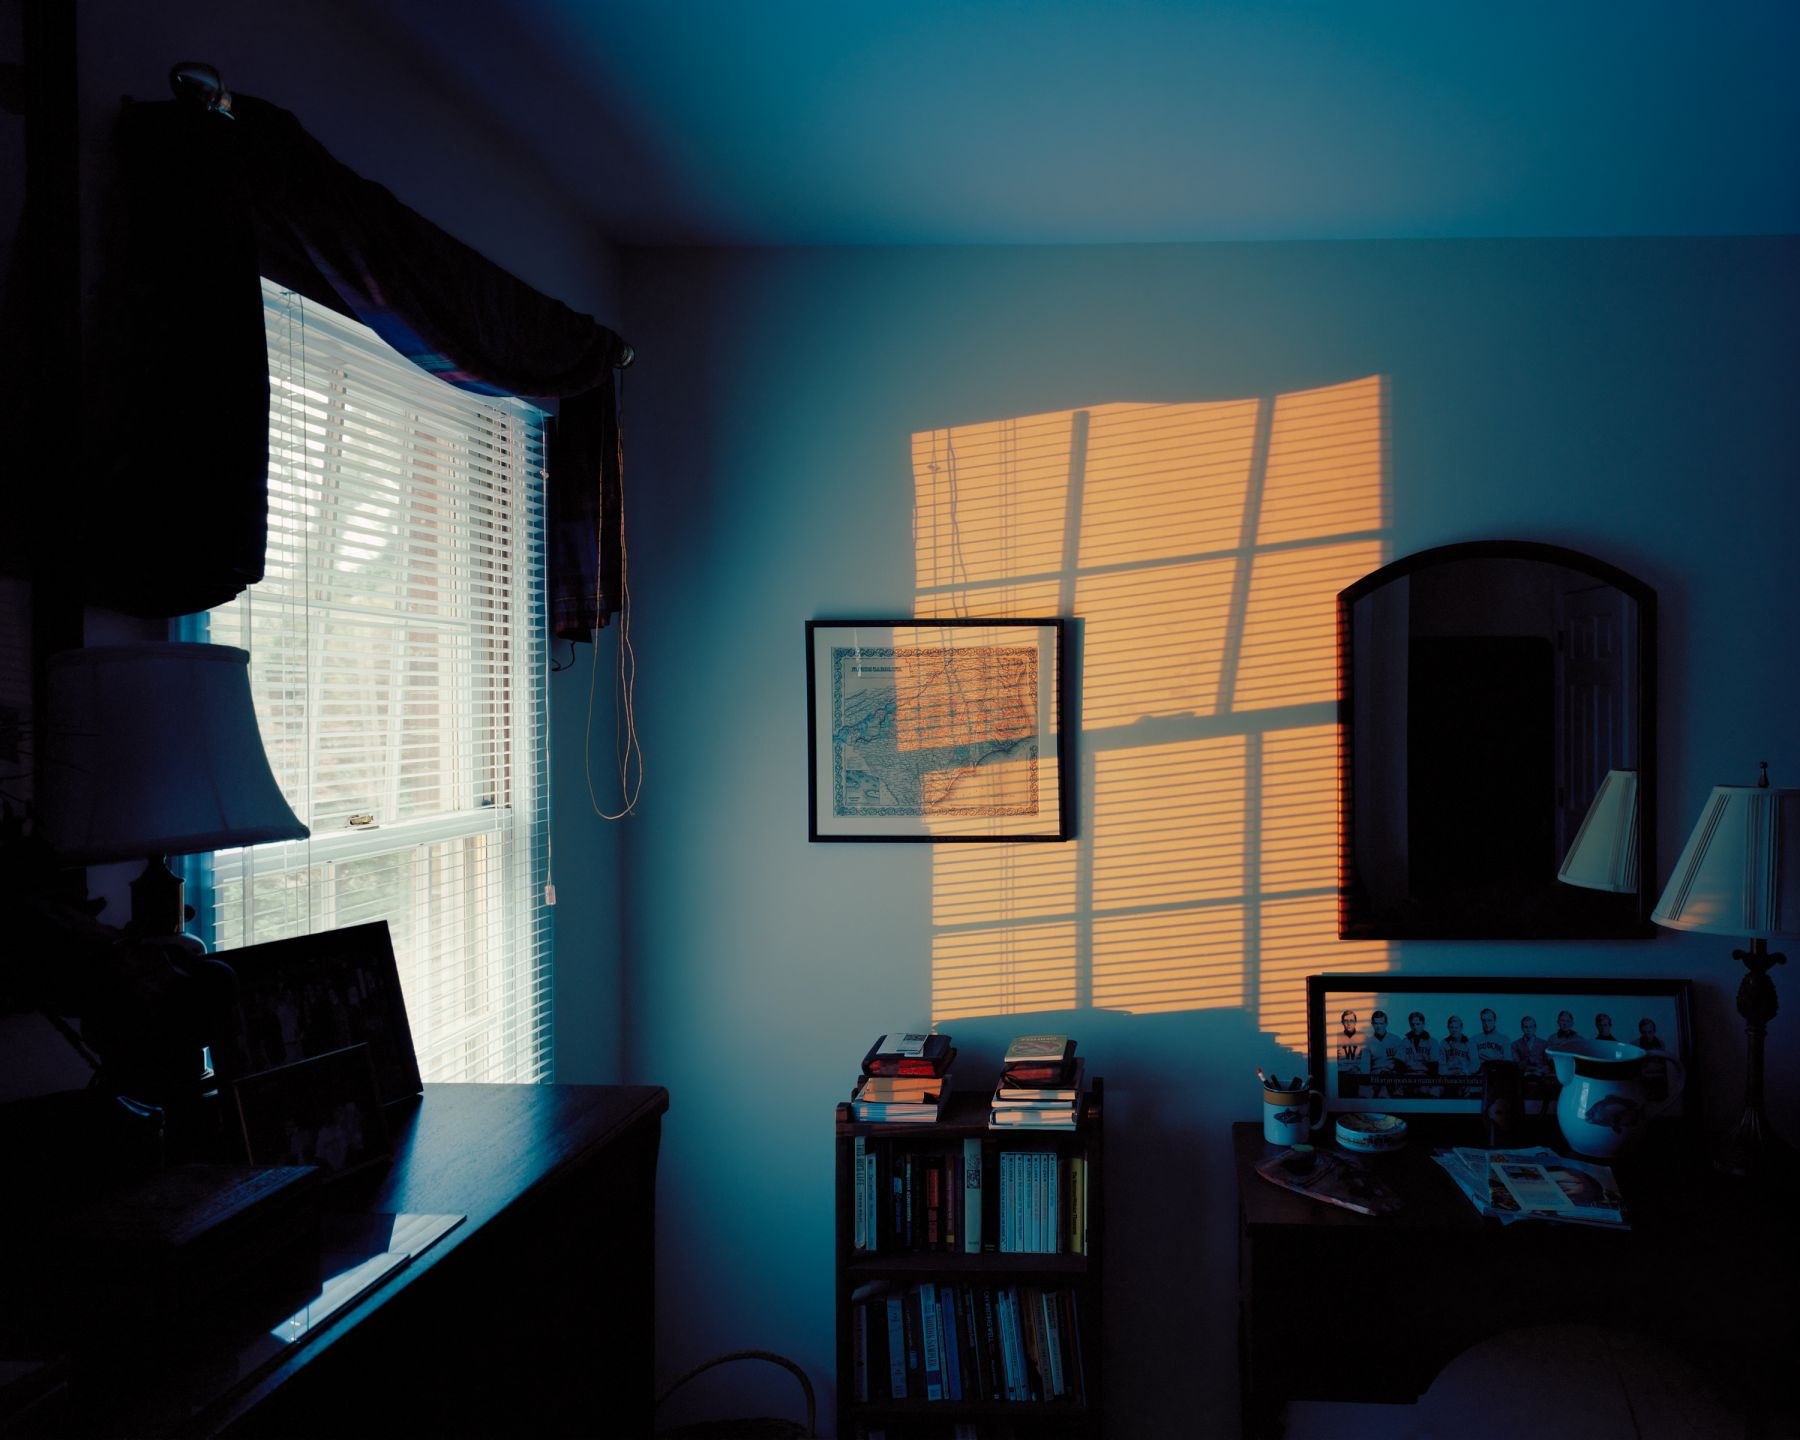 McNair Evans, Floodlight, 2009, Archival pigment print, 20 x 25 inches and 32 x 40 inches, Editions of 5. Photography.